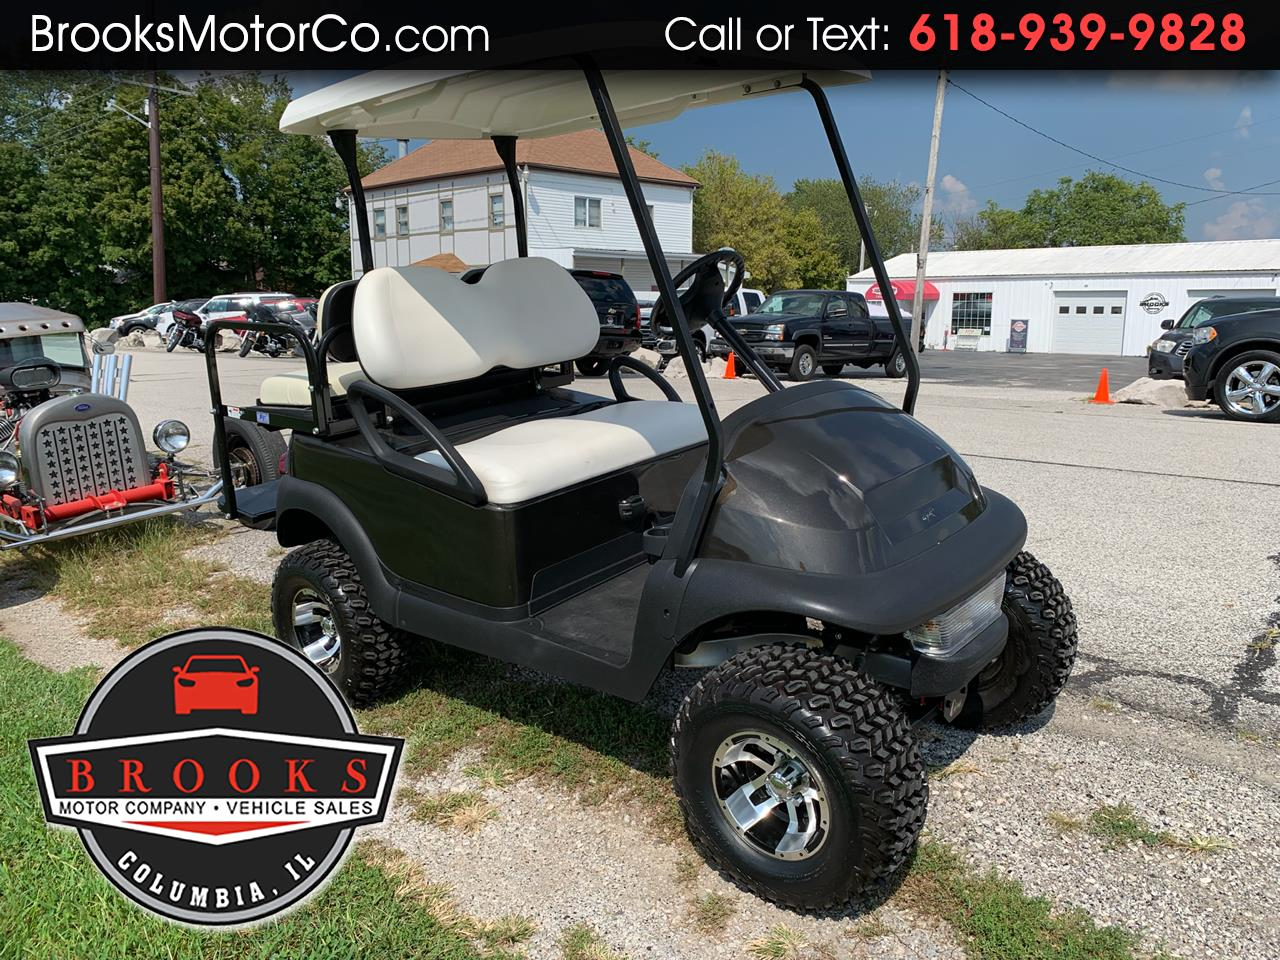 2013 Club Car Golf Cart LIFTED / WHEELS and Electric